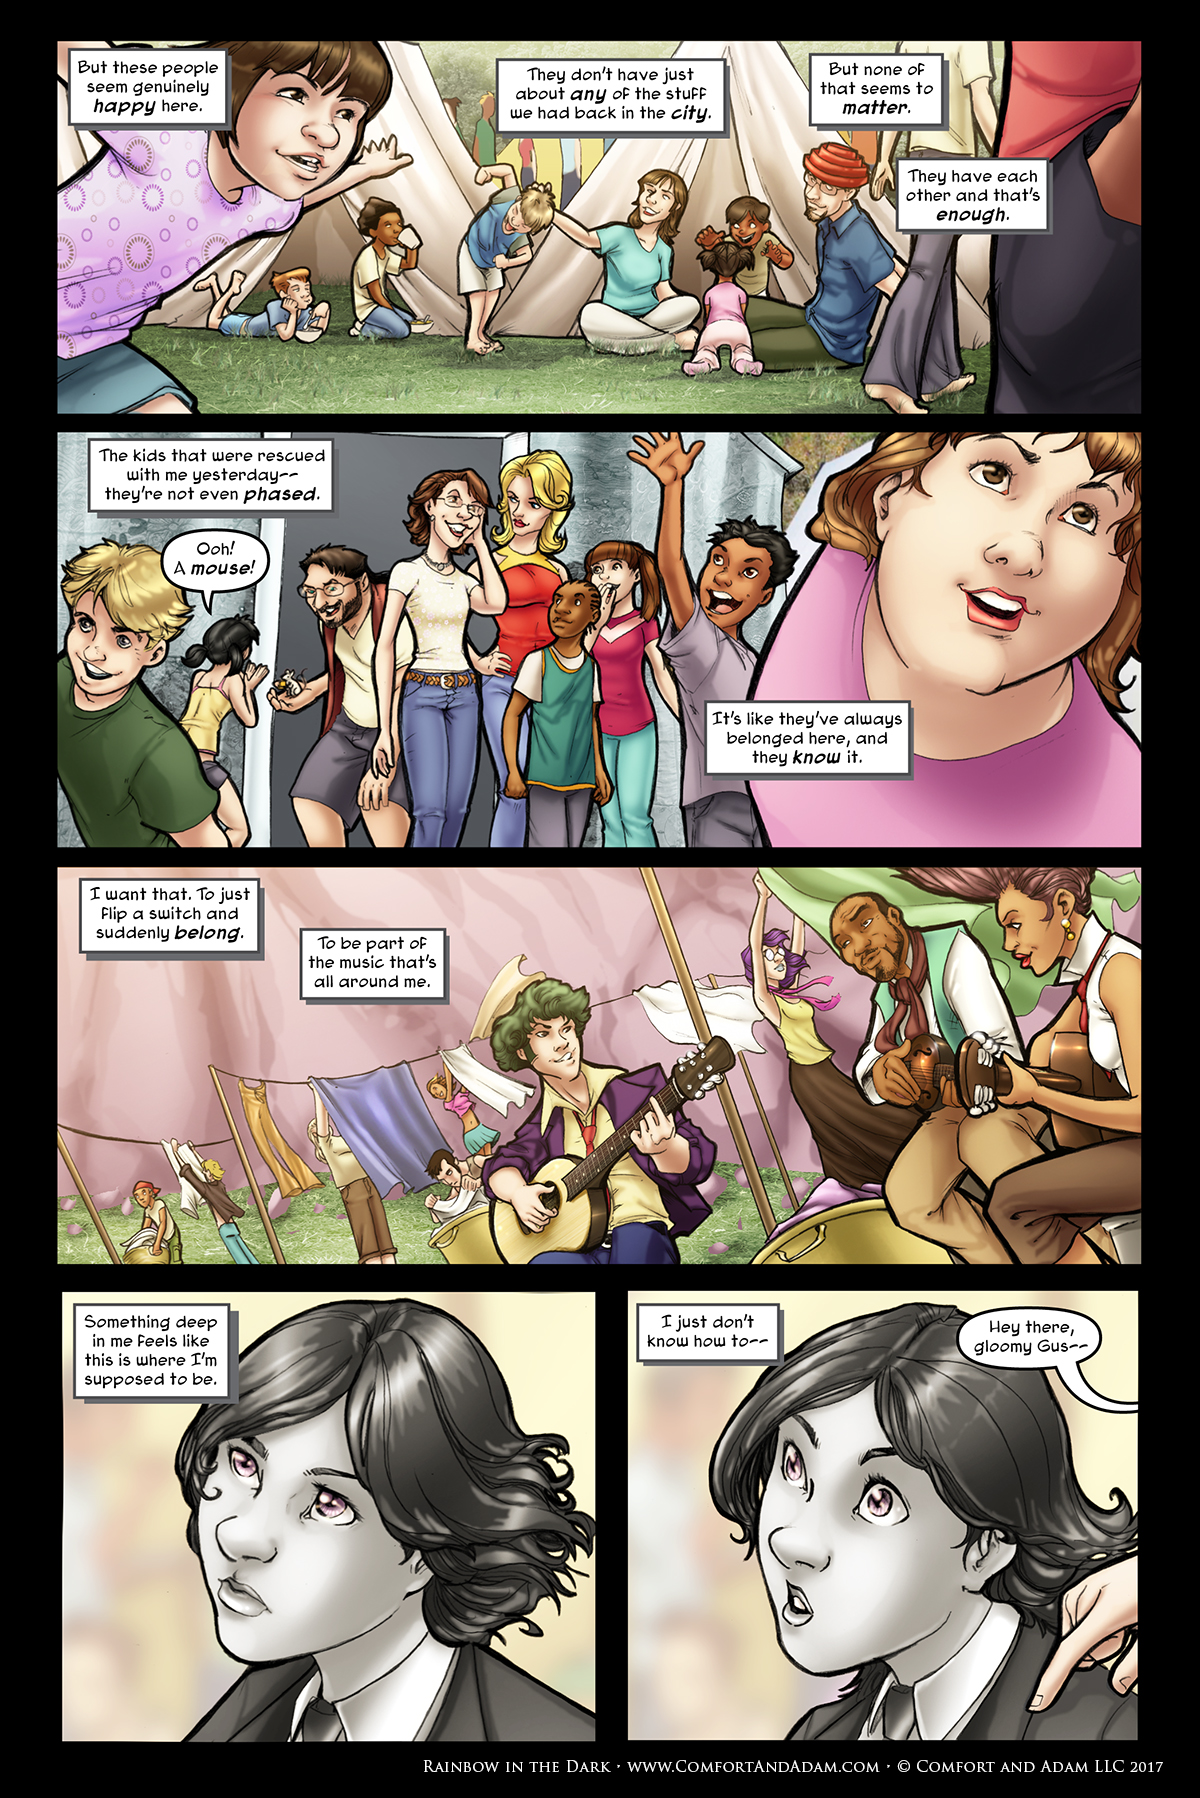 Rainbow in the Dark #2, pg. 2: A New Life